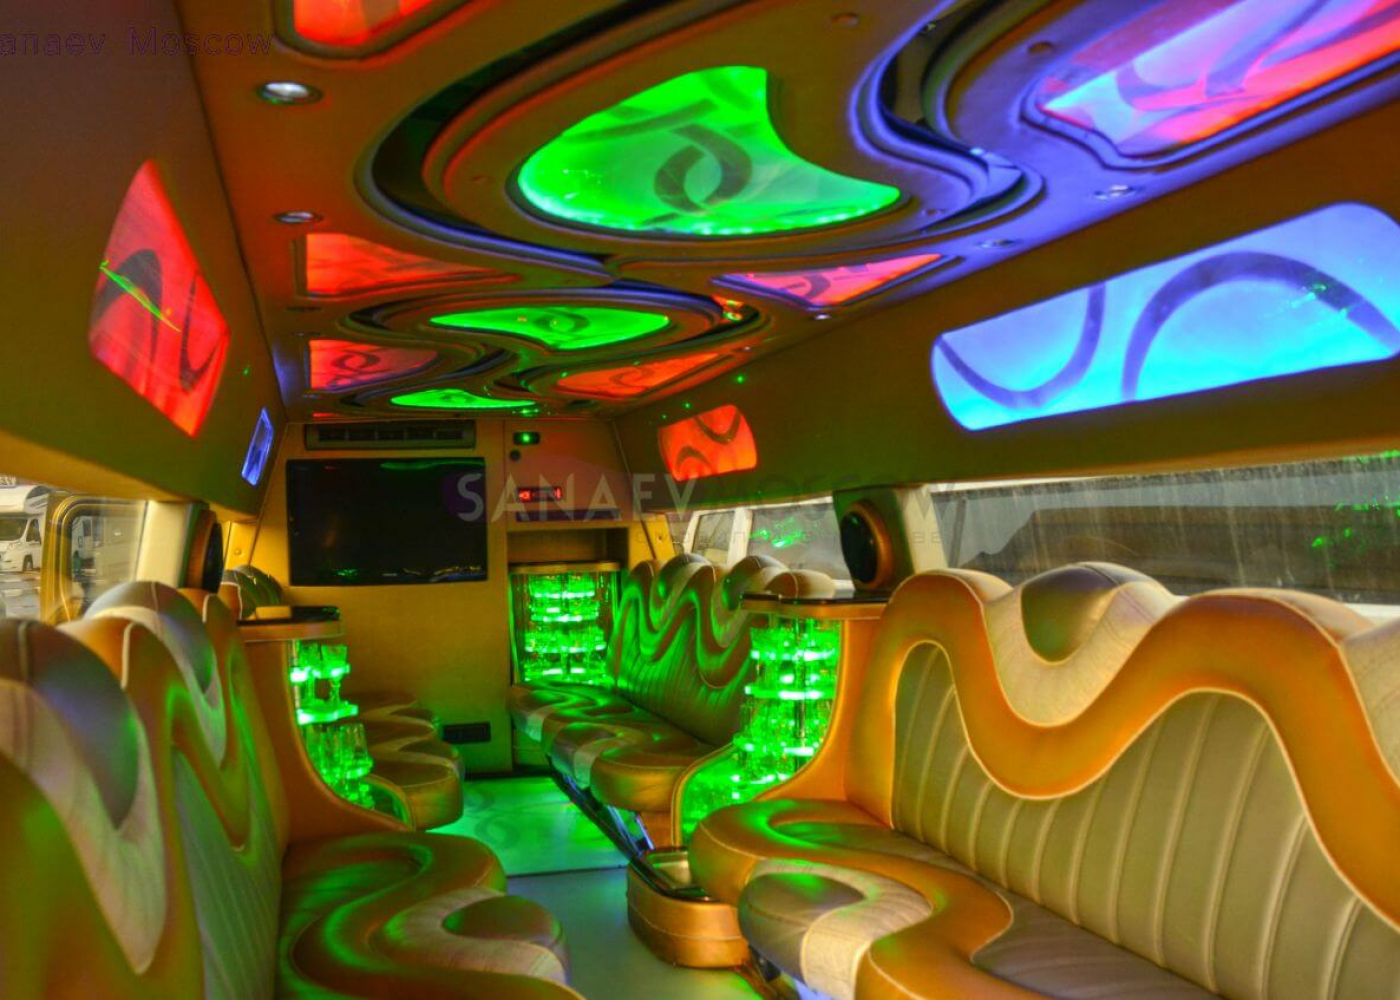 new-limo--sanaevmoscow-all-0008.jpg